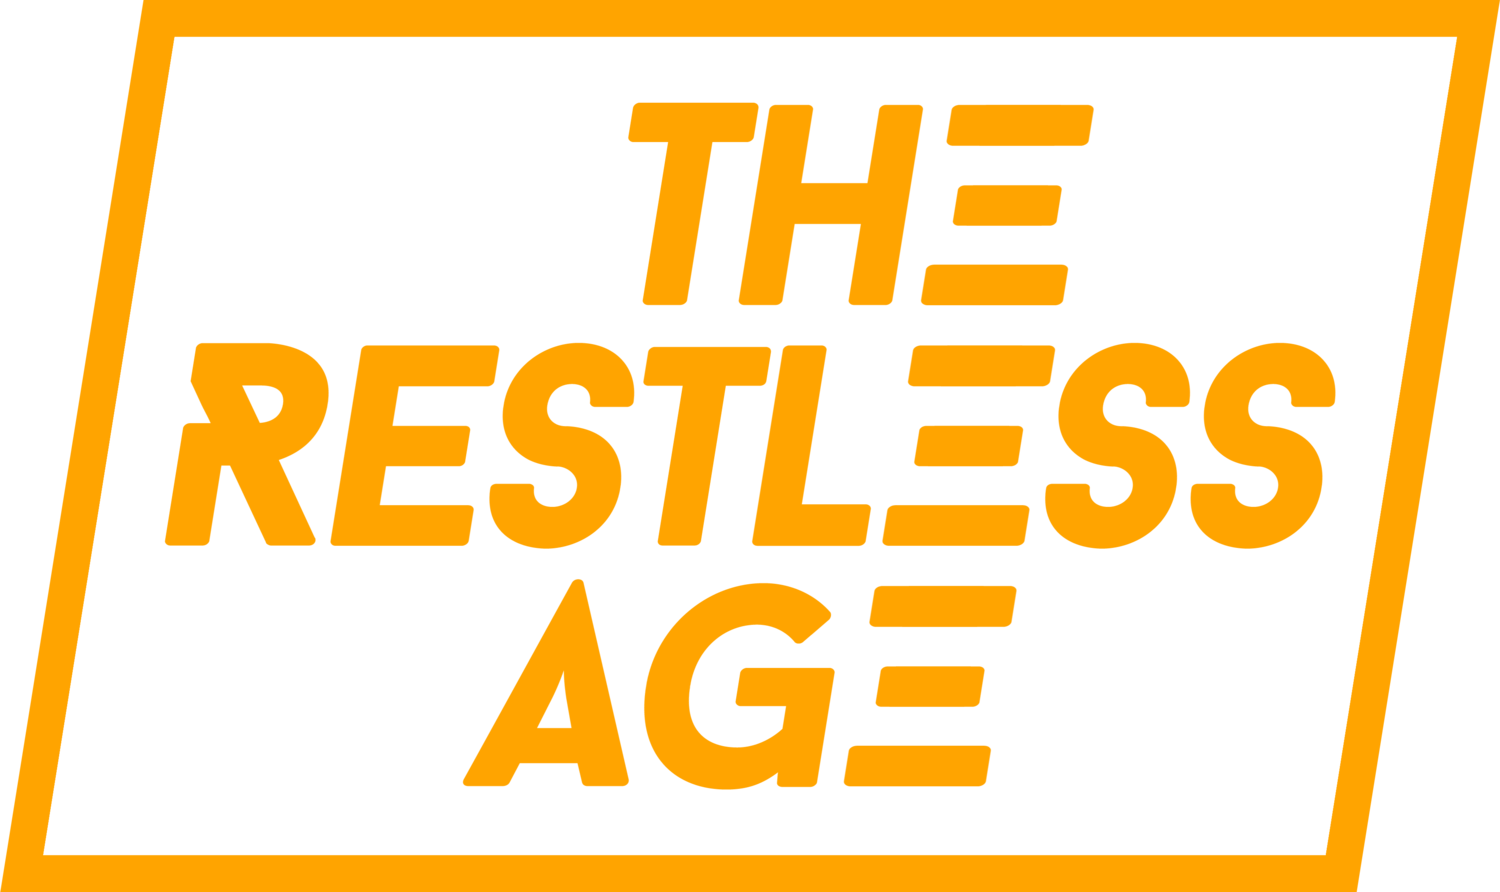 The Restless Age